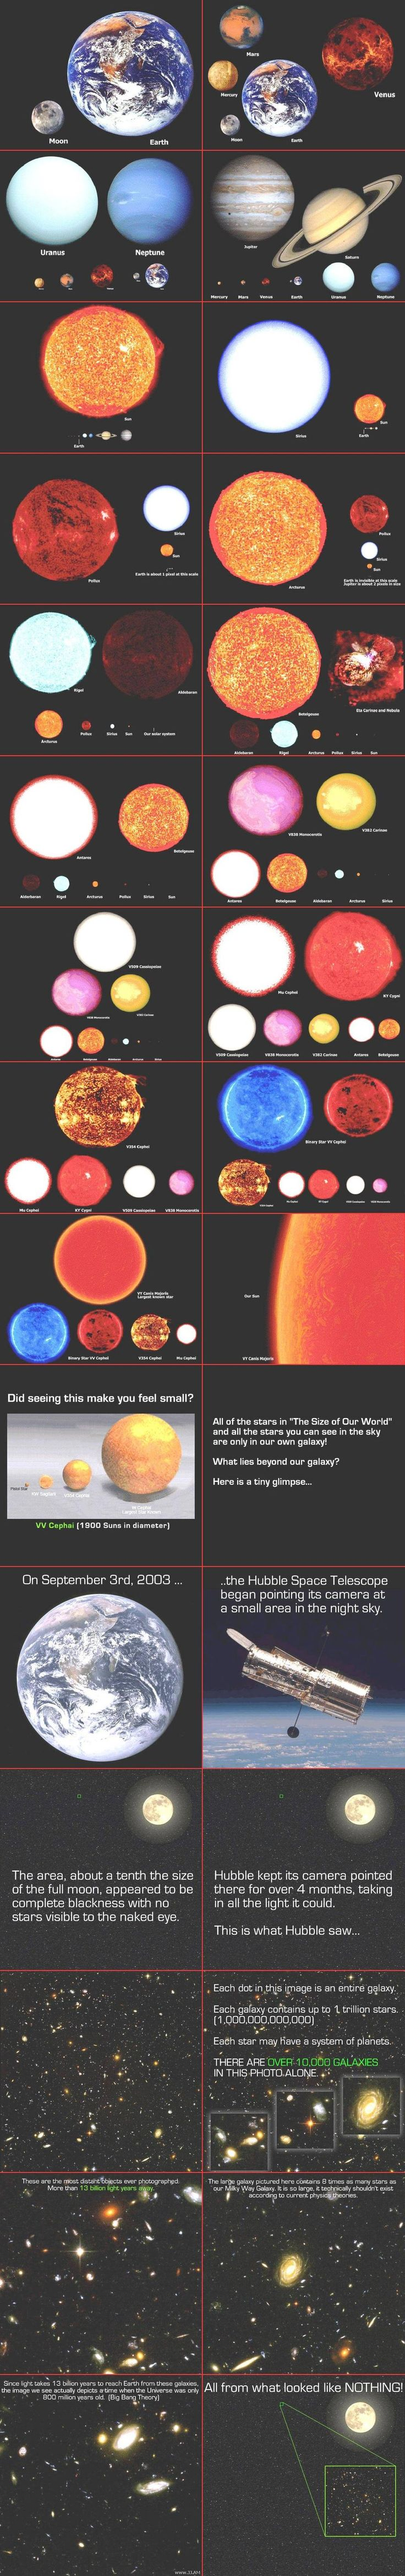 Understanding the size of Earth in comparison to the rest of our solar system -- an amazing illustration to visualize the size and scale of our world!